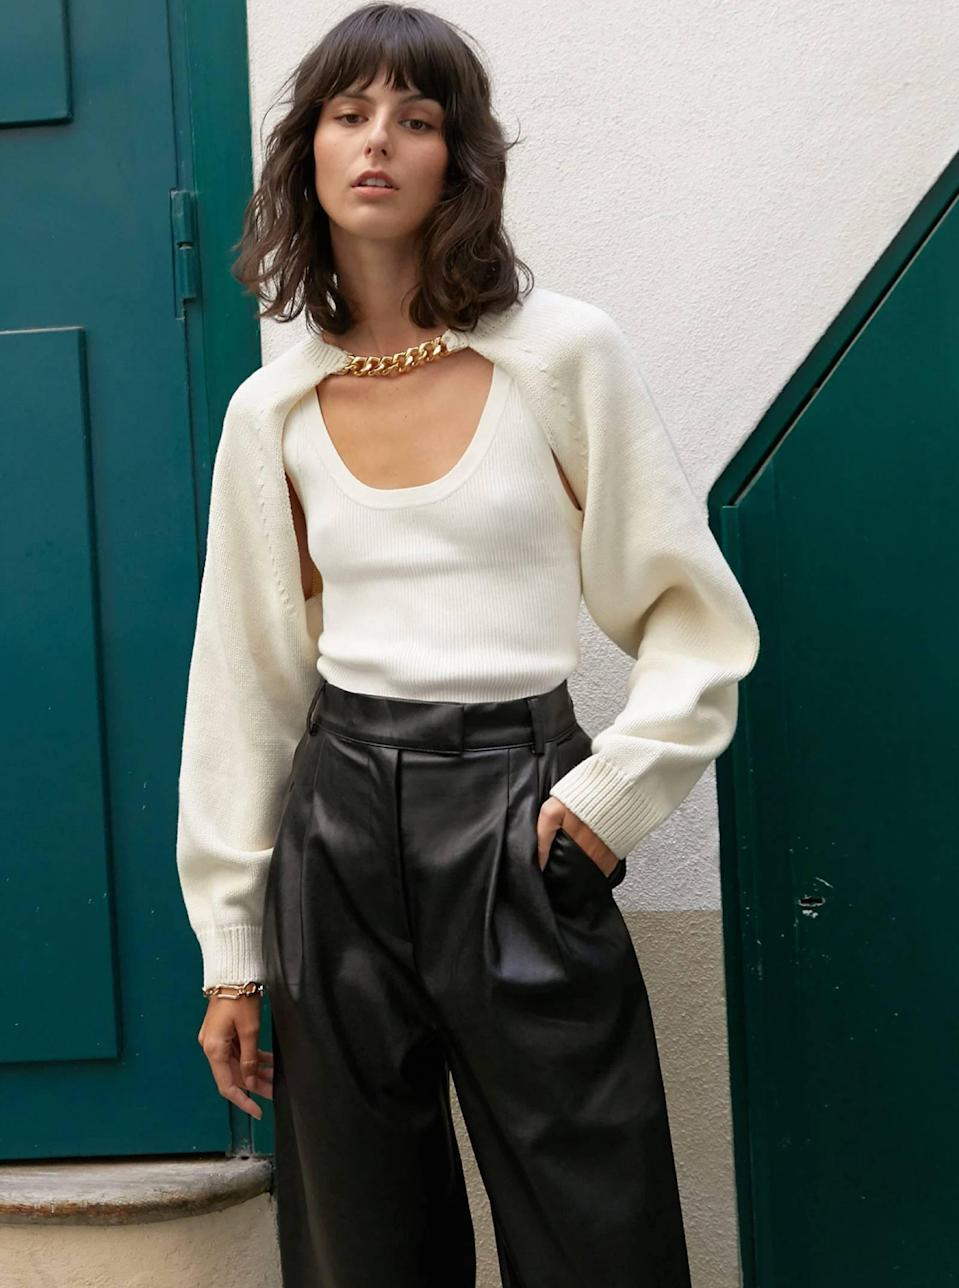 """Honestly, the cream version of this Pixie Market shrug is just as good the black—10/10 would add both to cart. $105, Pixie Market. <a href=""""https://www.pixiemarket.com/products/chain-link-knit-bolero?"""" rel=""""nofollow noopener"""" target=""""_blank"""" data-ylk=""""slk:Get it now!"""" class=""""link rapid-noclick-resp"""">Get it now!</a>"""